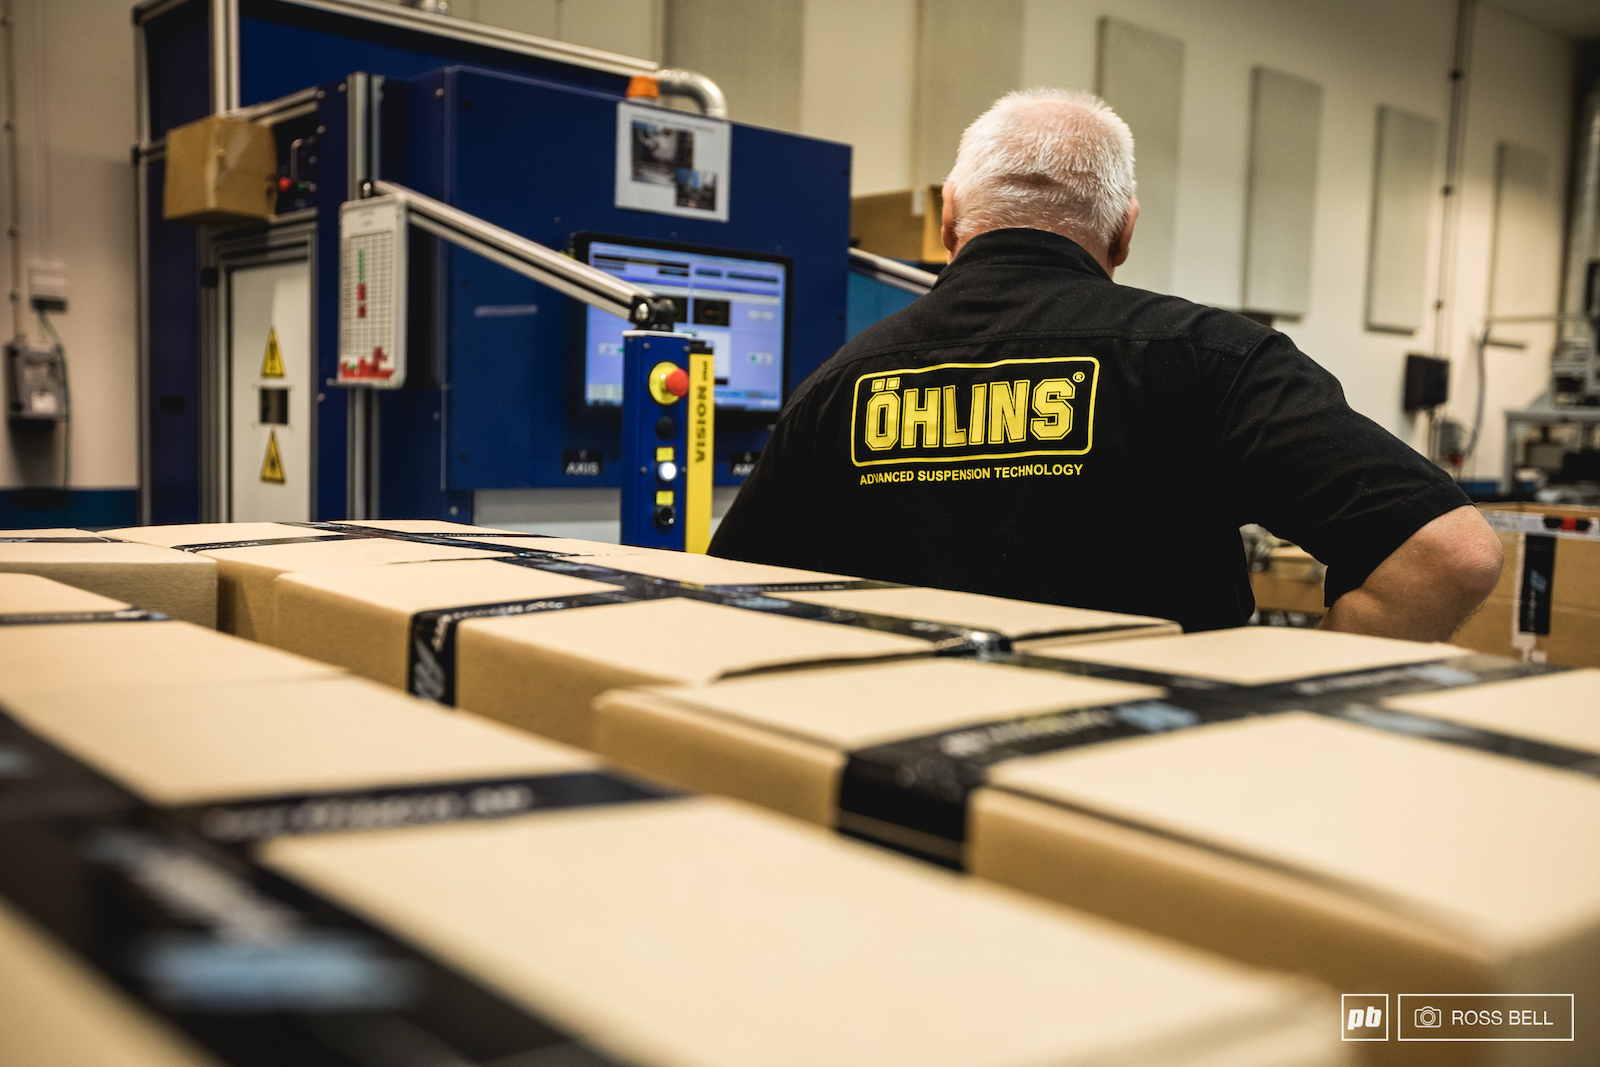 Ohlins Racing